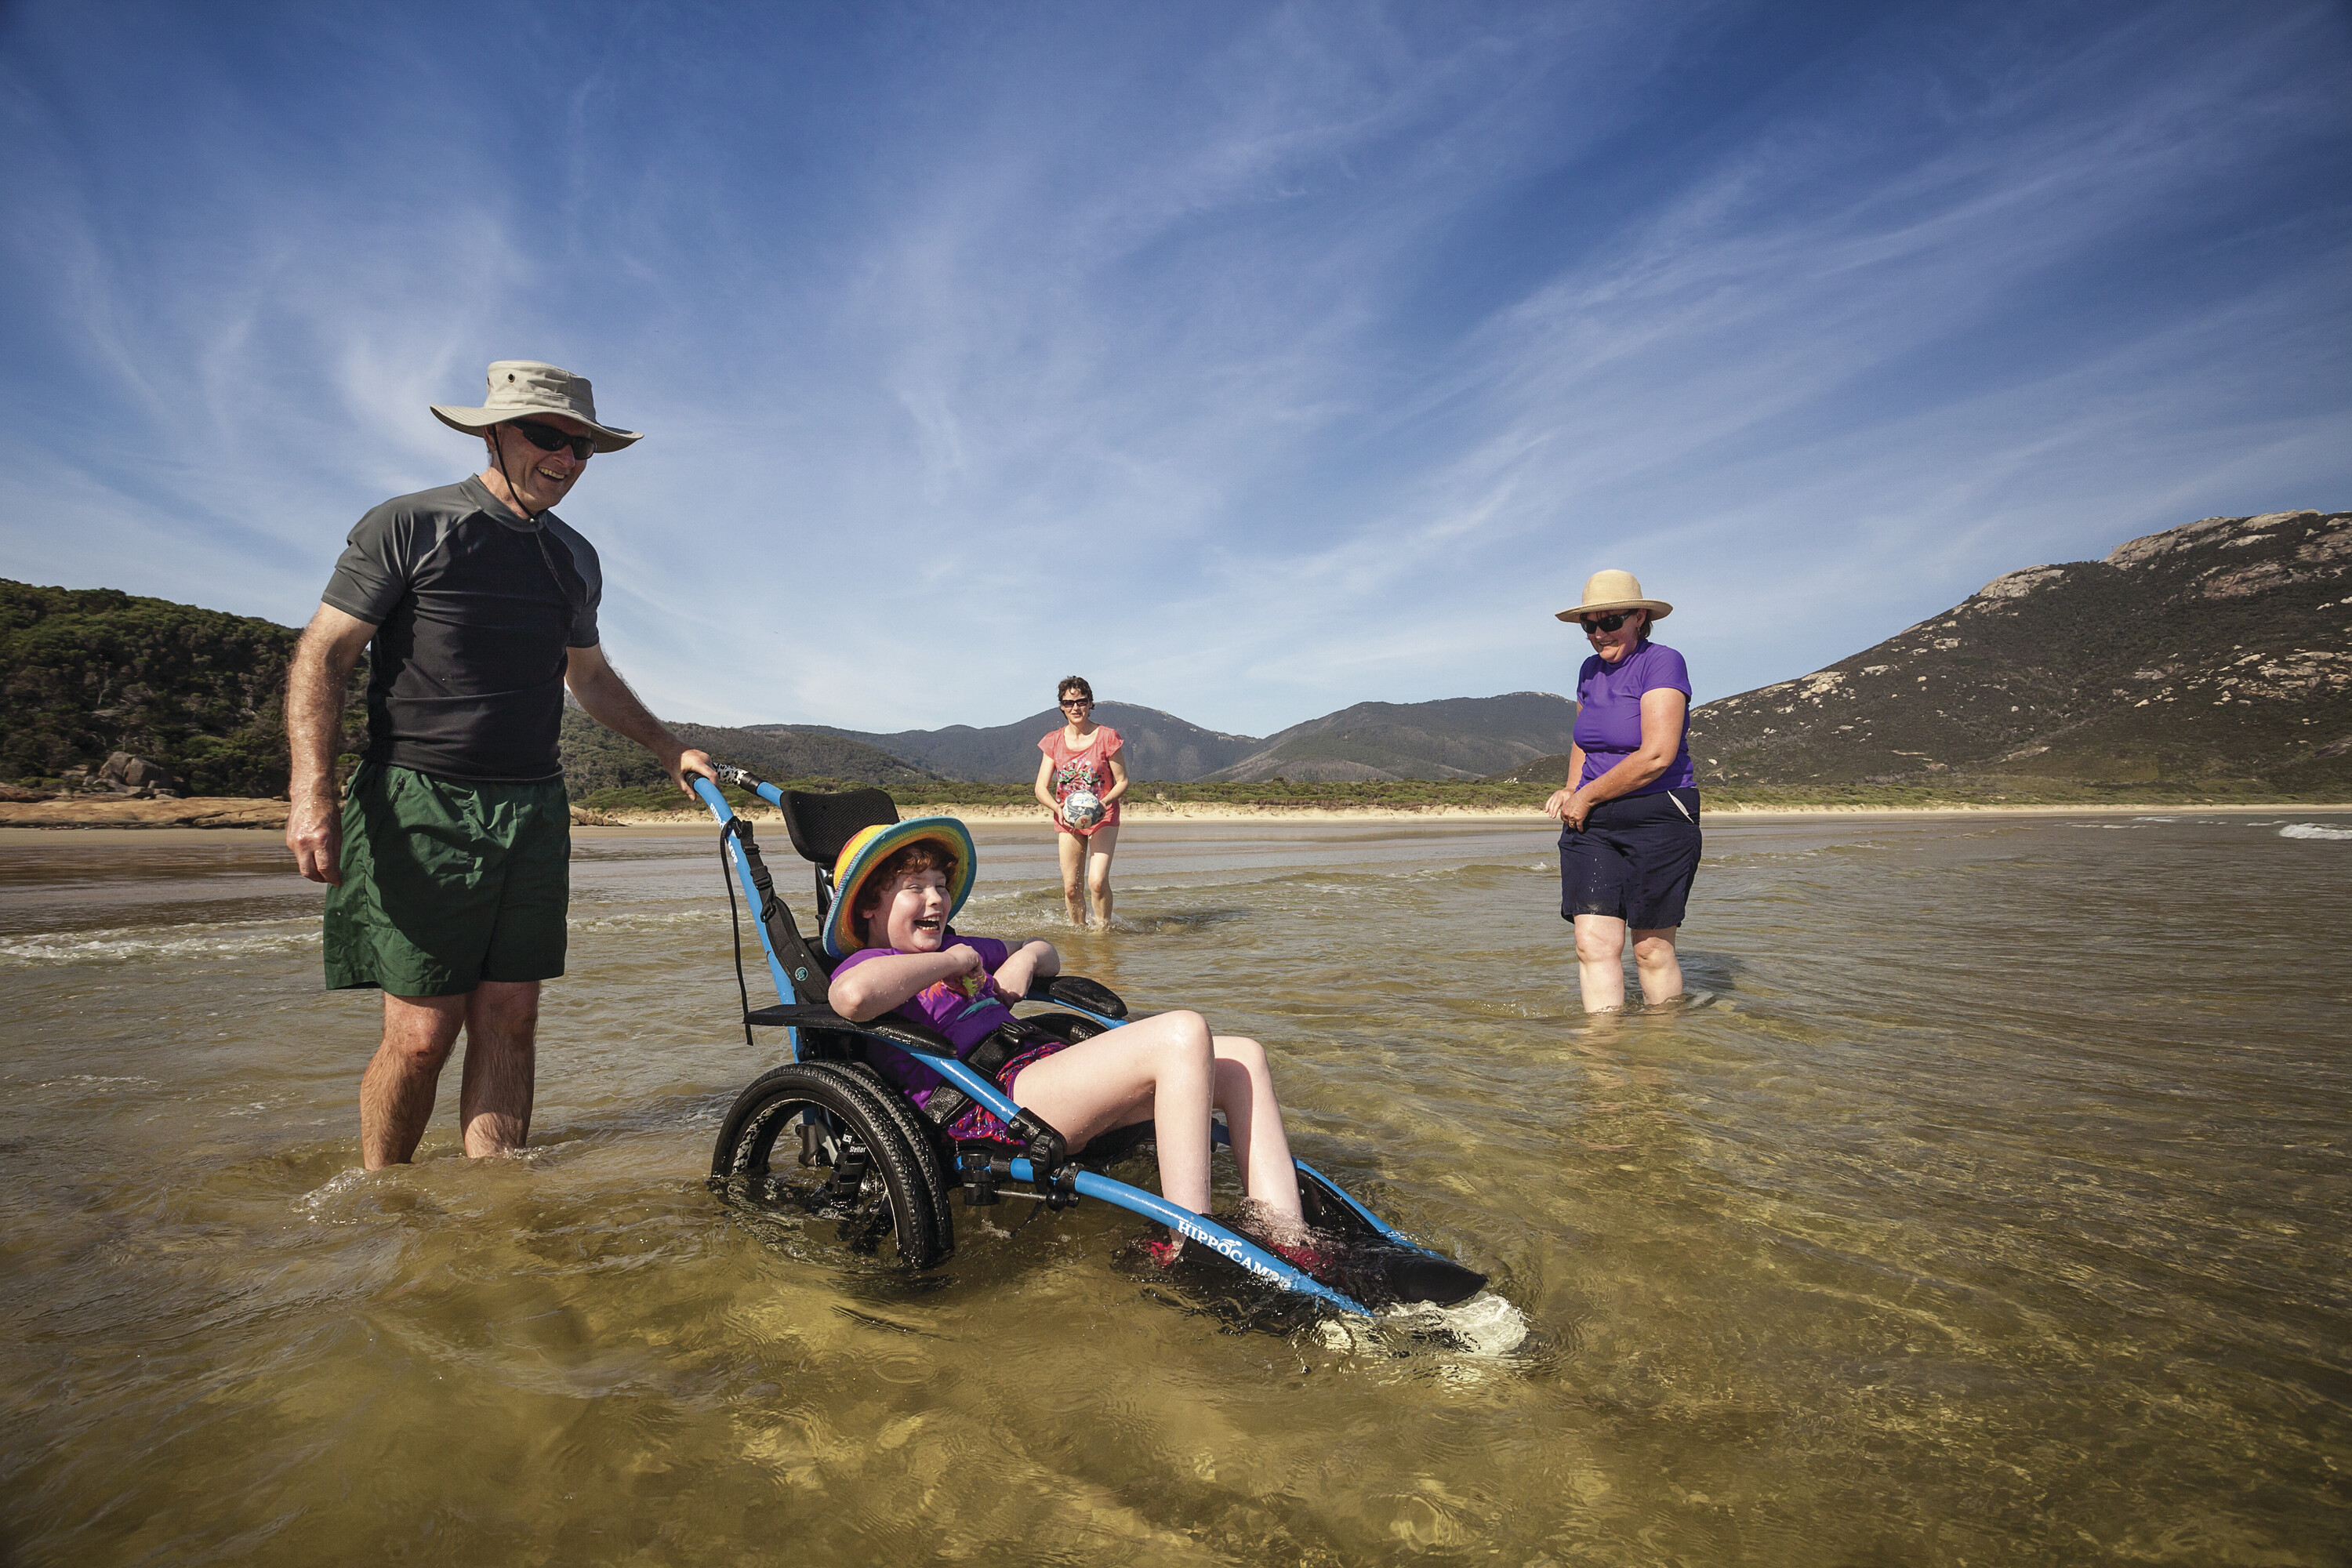 All terrain wheelchair in use at Wilsons Promontory